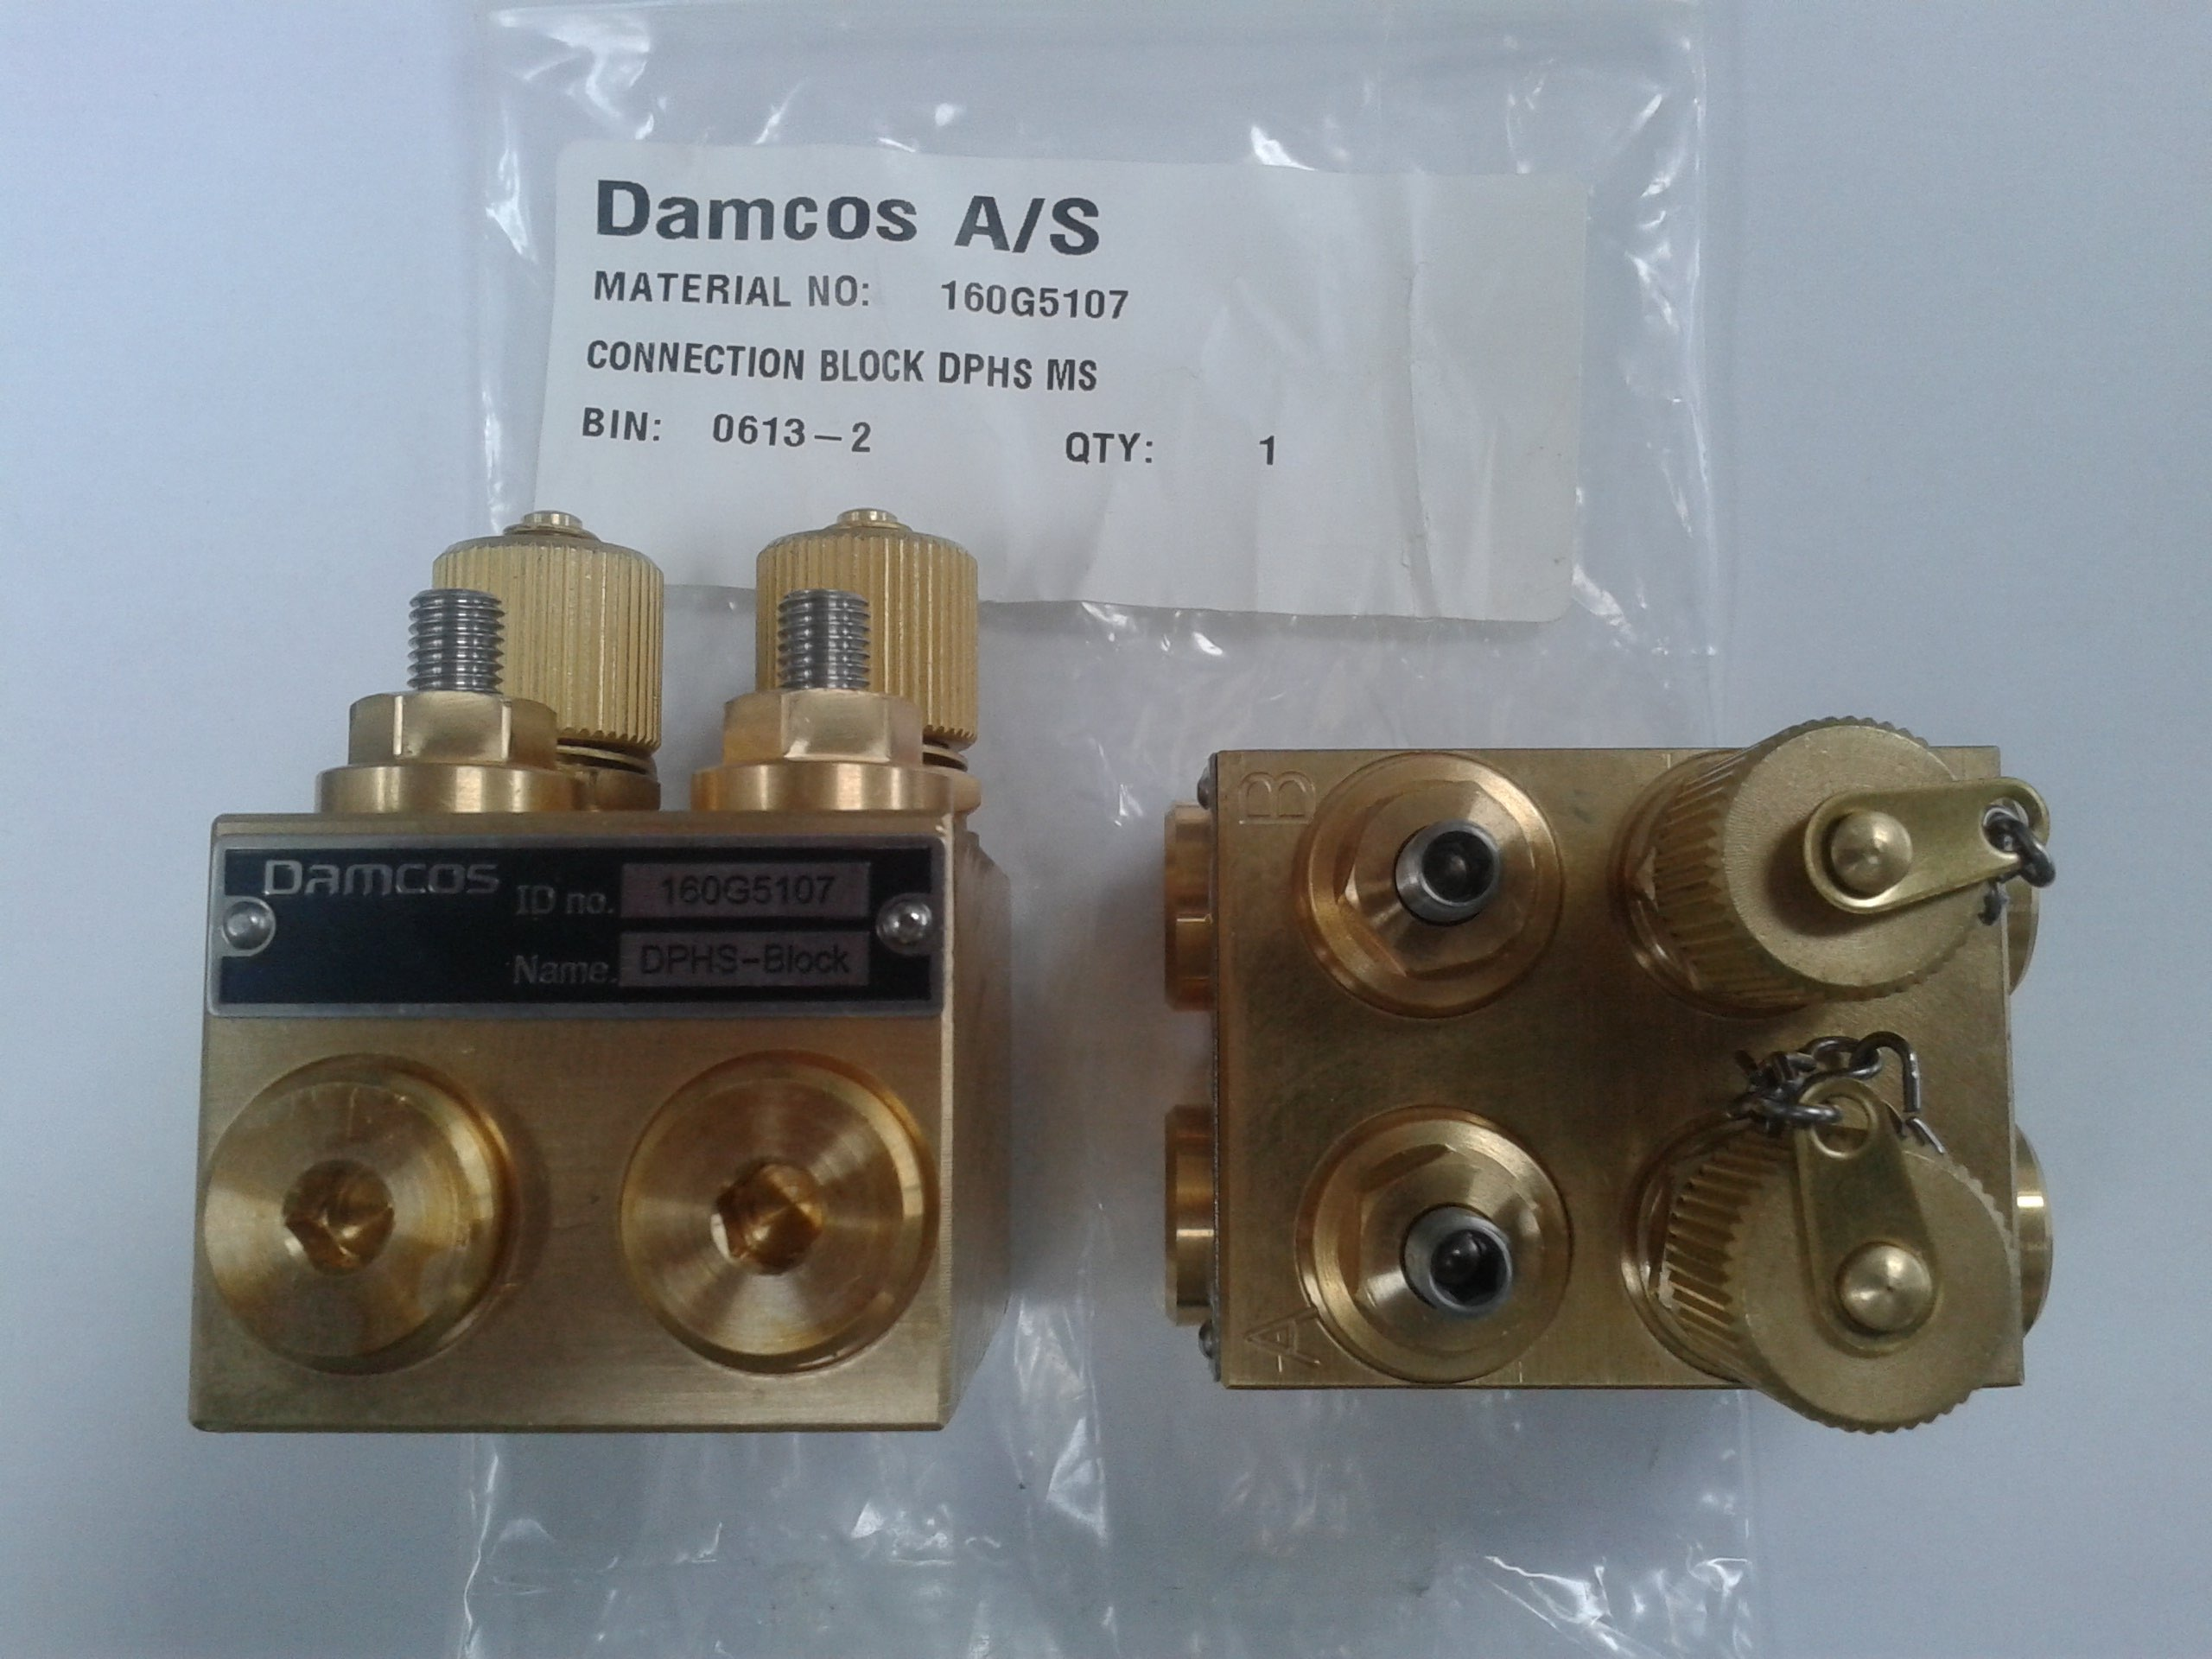 Damcos Pipe Mount Block DHPS 160G5107